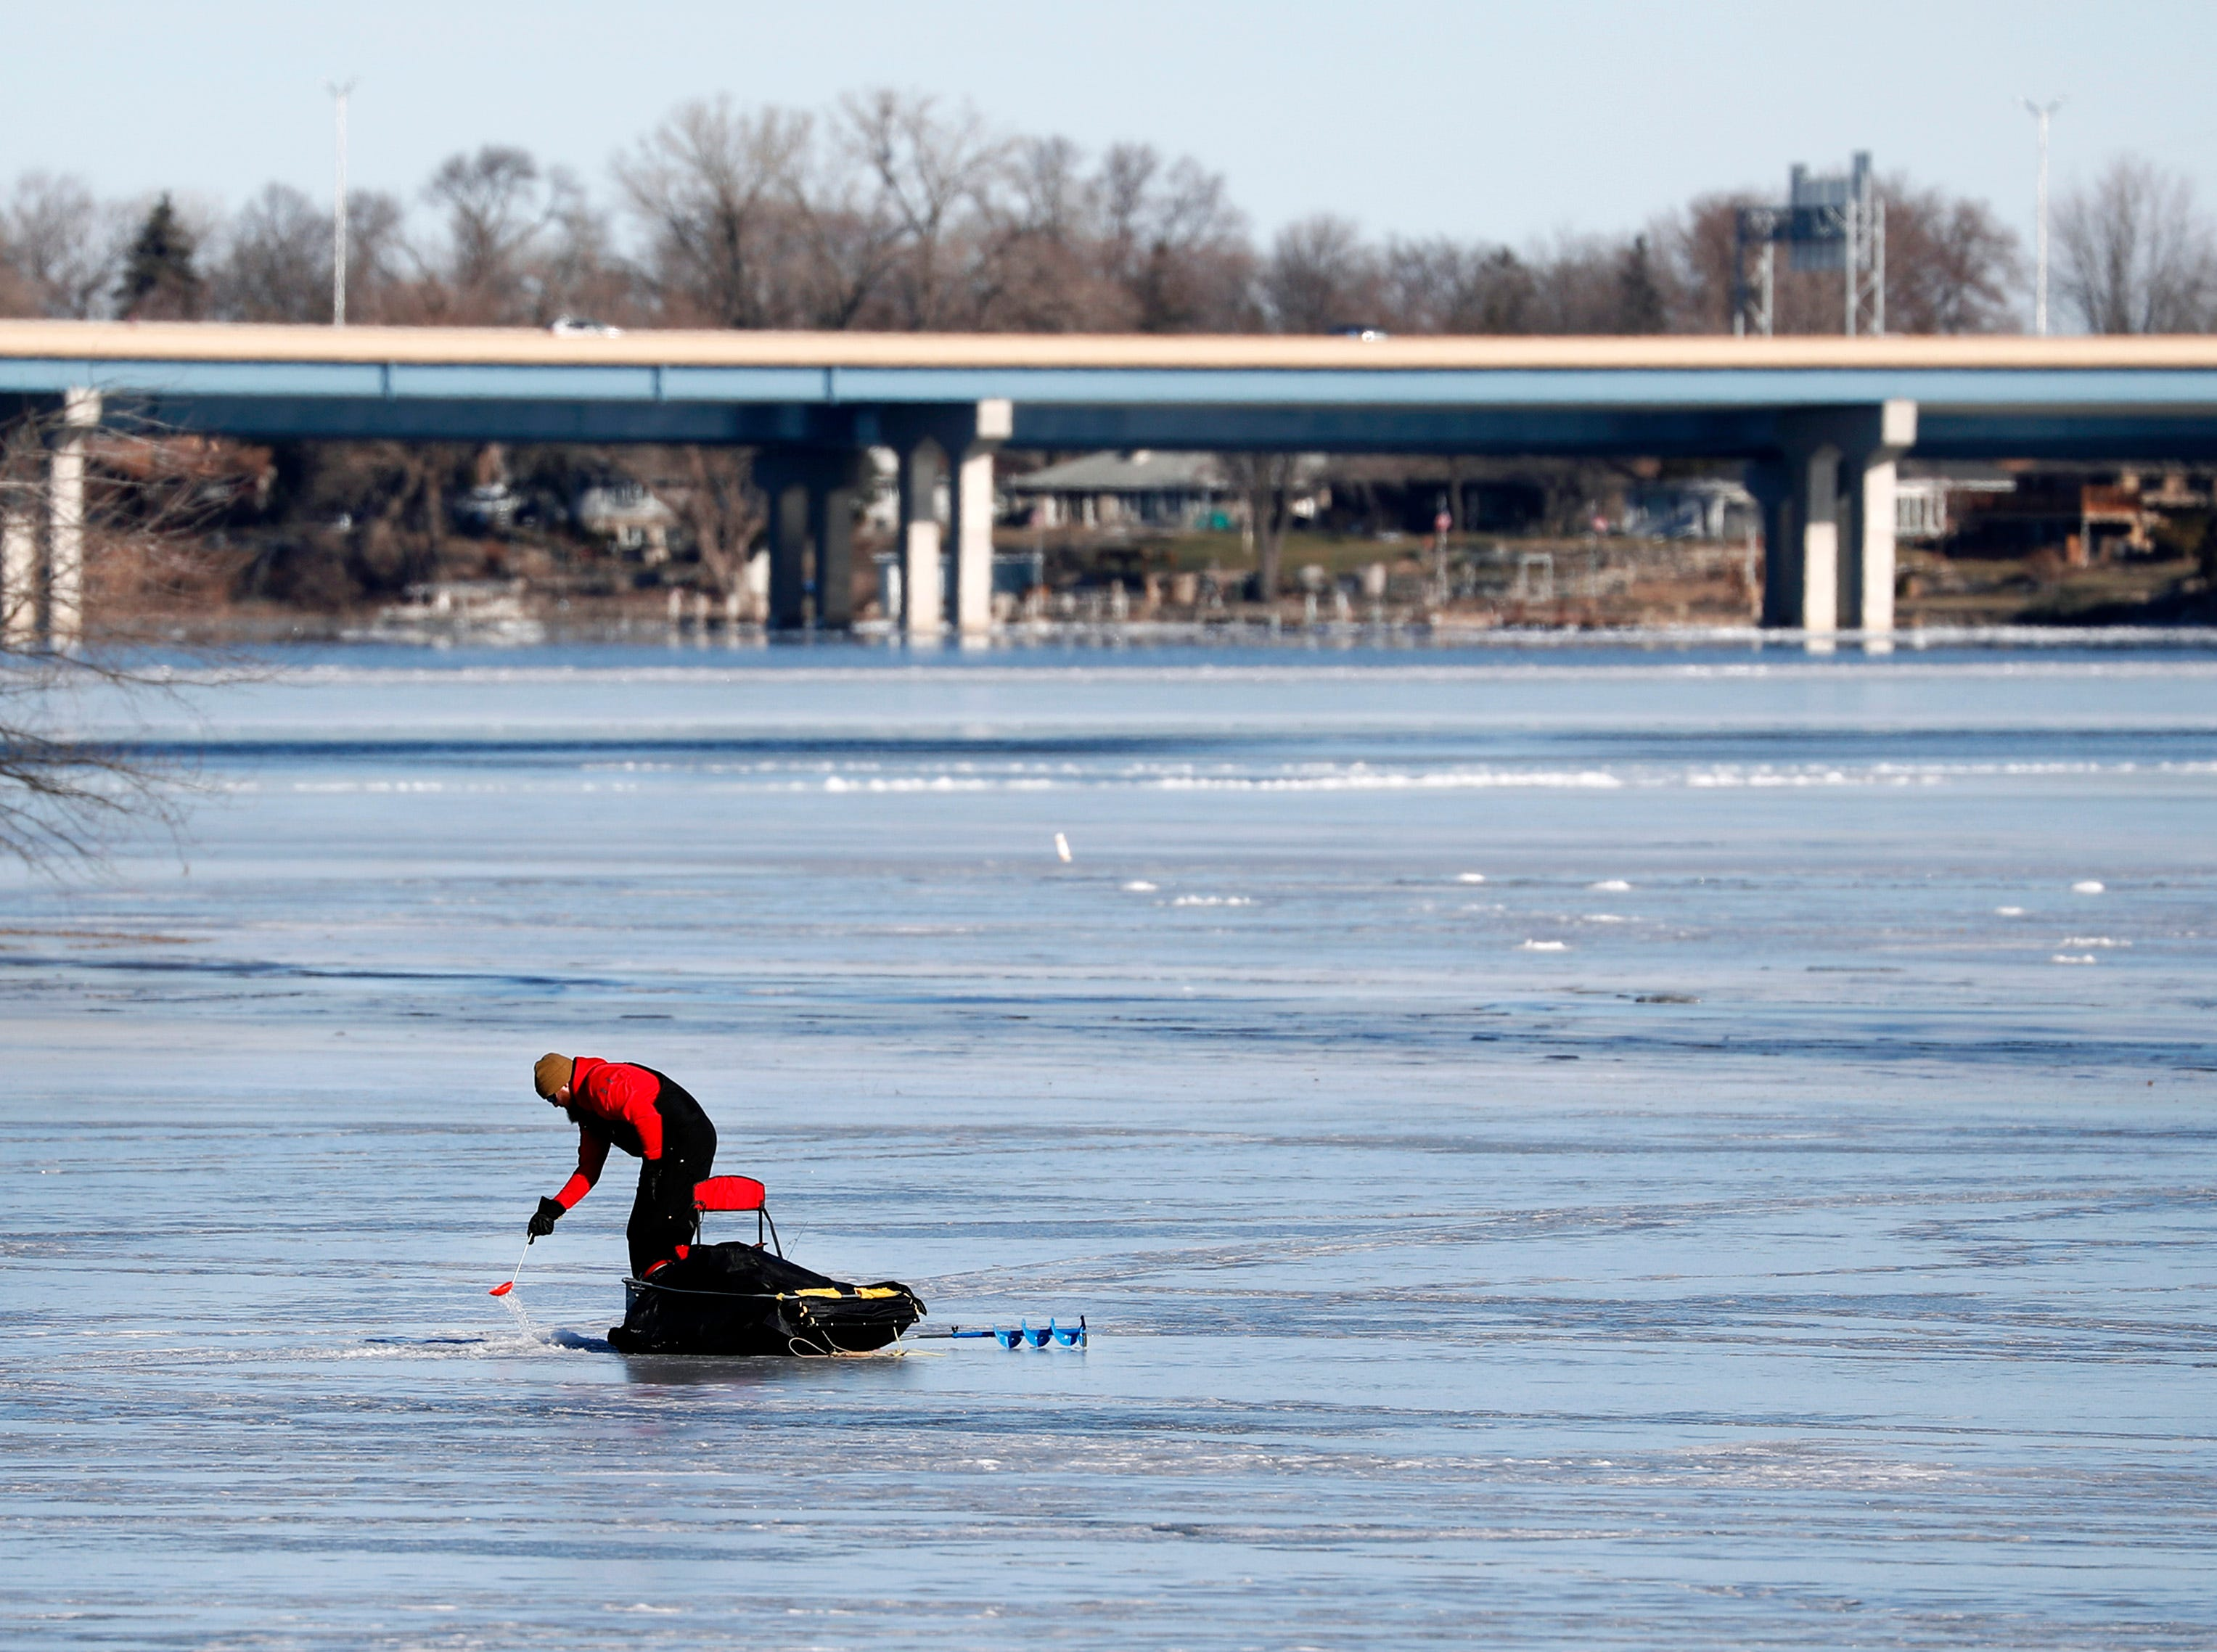 Mark Taczala, of Menasha, skims the loose ice away from an ice fishing hole Wednesday, Jan. 16, 2019, in Menasha, Wis.